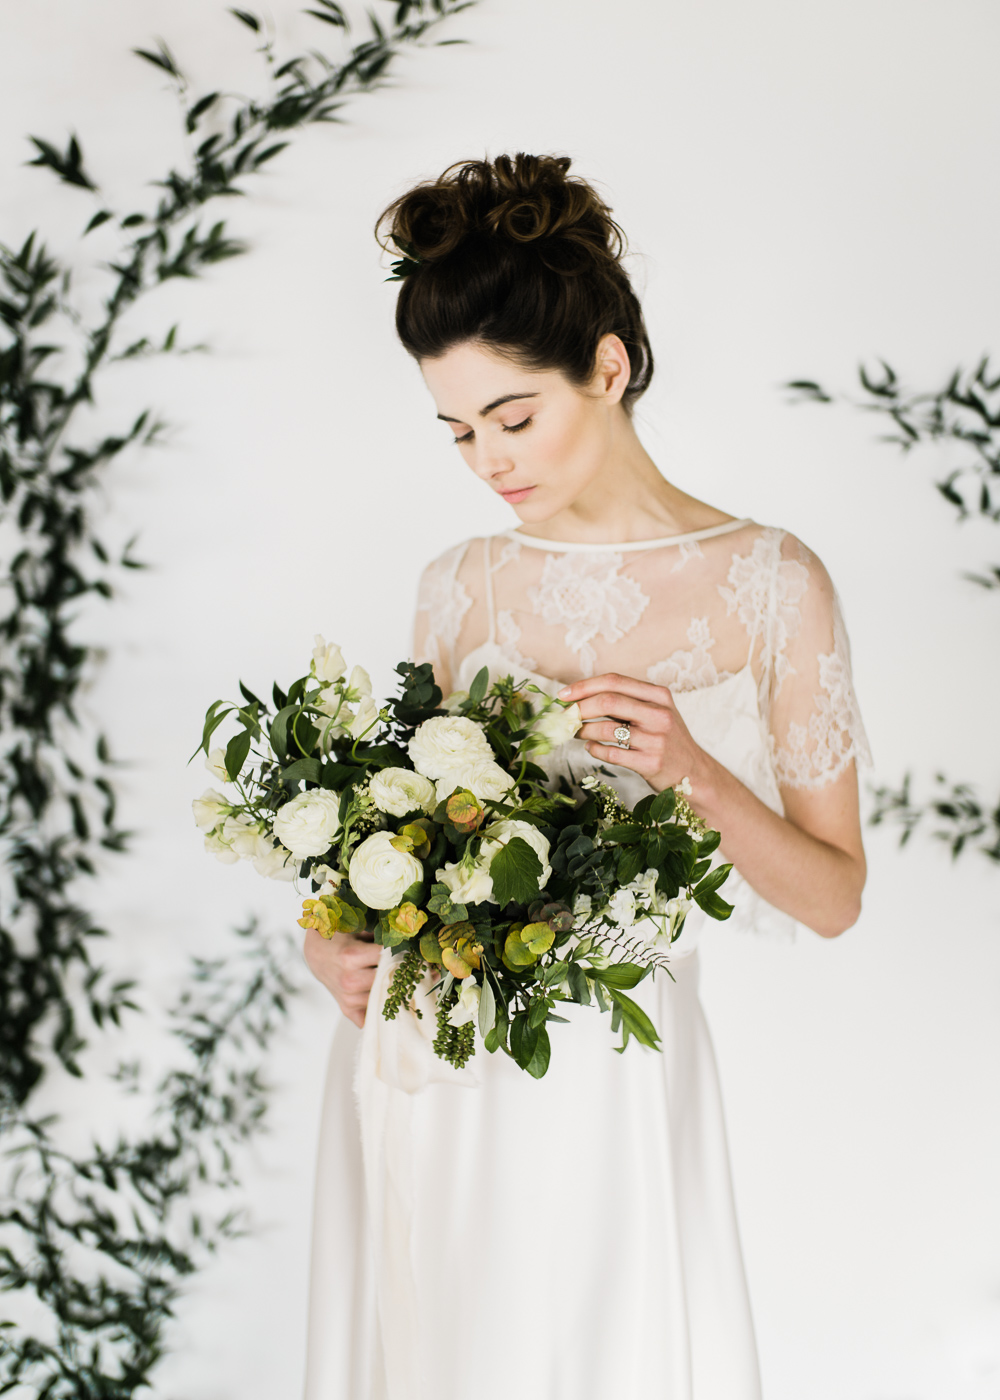 Wedding dress by Halfpenny London featured on Rock My Wedding blog | Image by John Barwood Photography